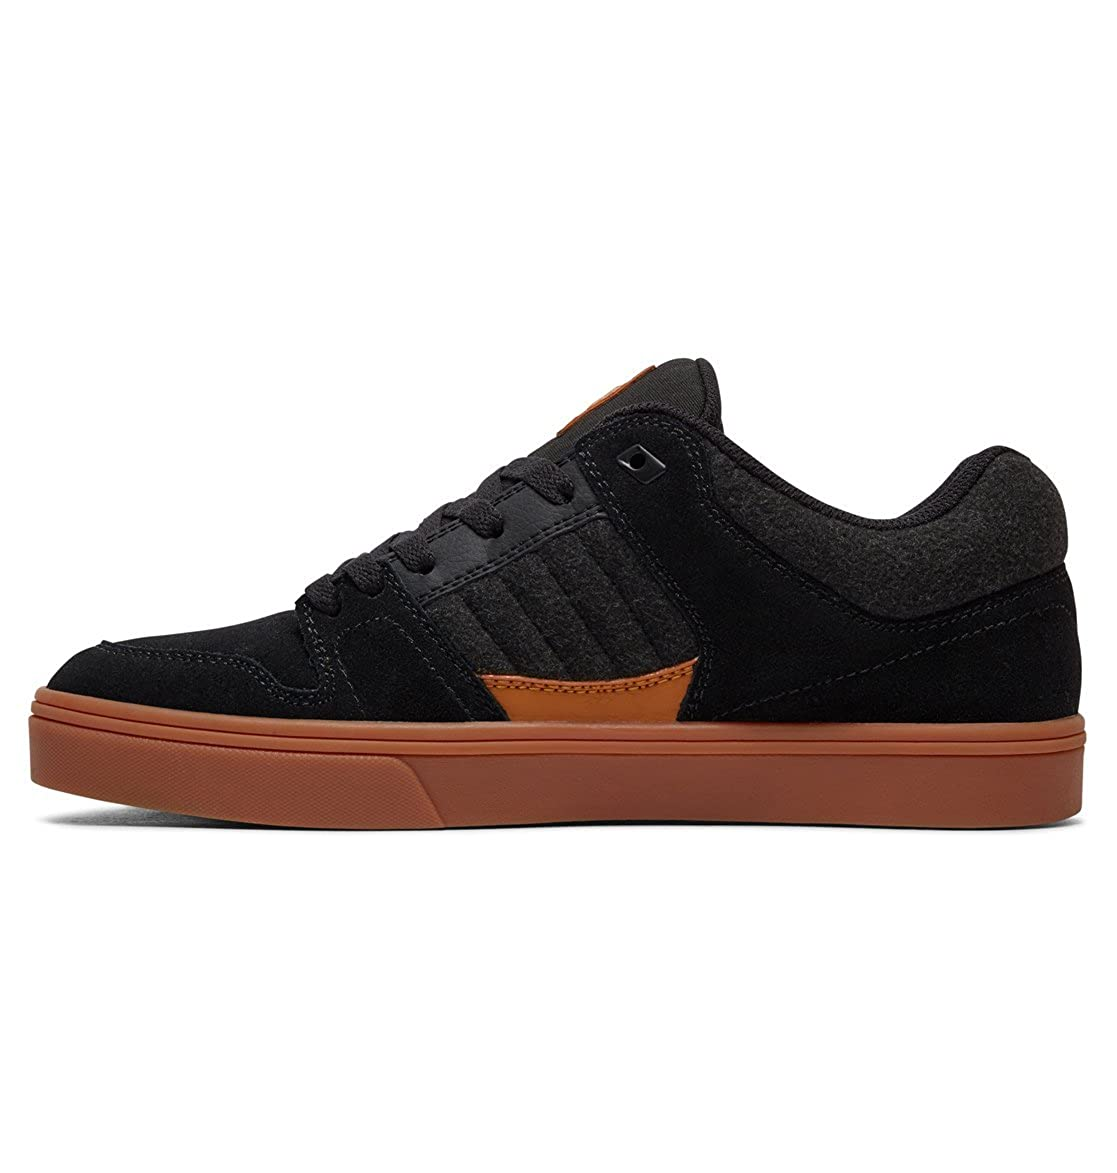 DC Shoe Course 2 Se M Shoe DC Herren Low-Top Black/Gum 237723